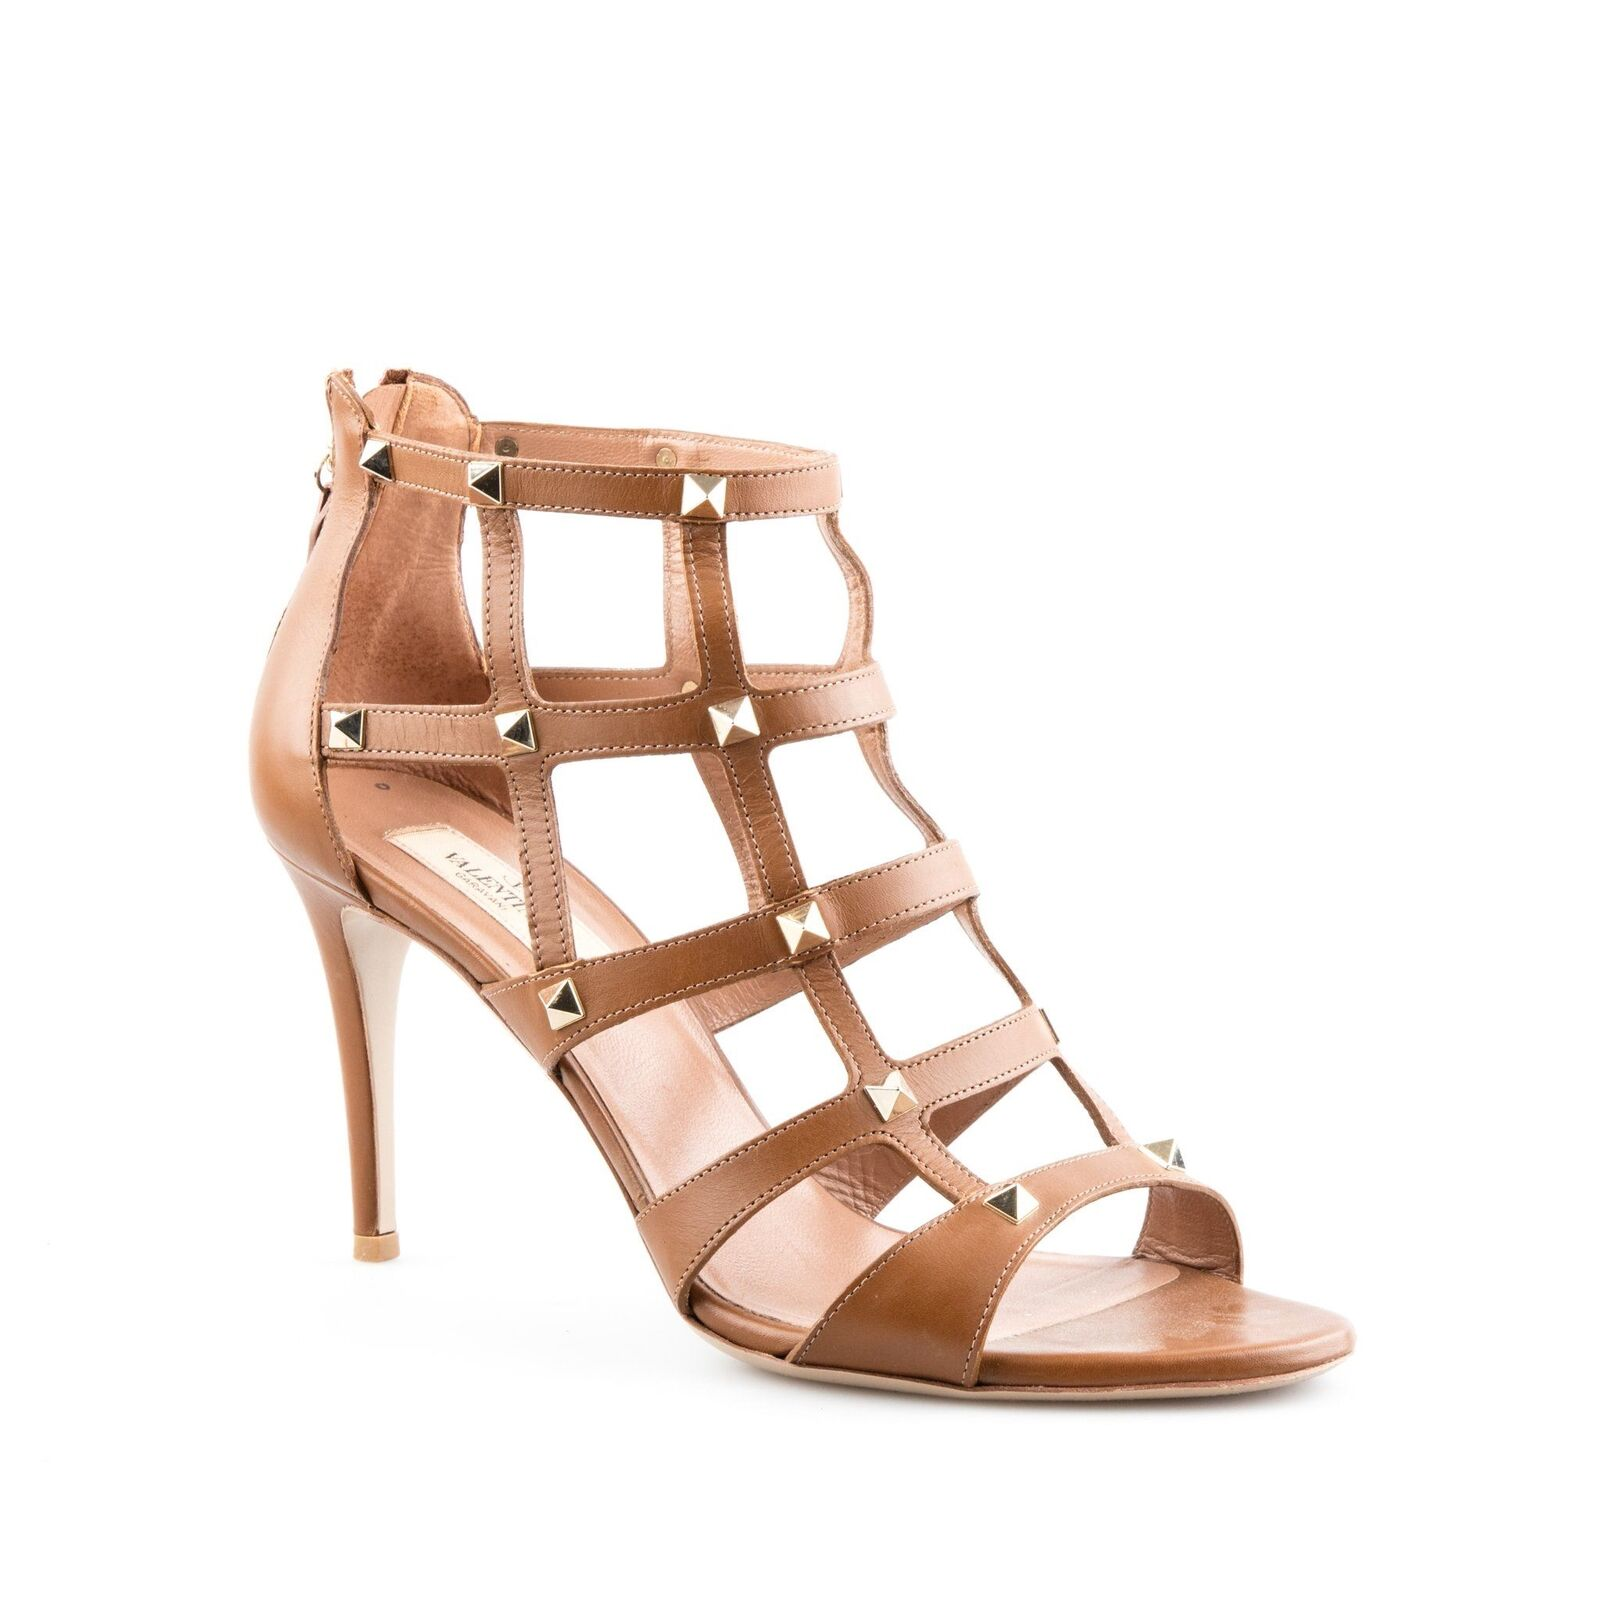 Valentino Brown Leather 'Rockstud' Mid-Heel Caged Sandals Size - Size Sandals 40 ddb6b0